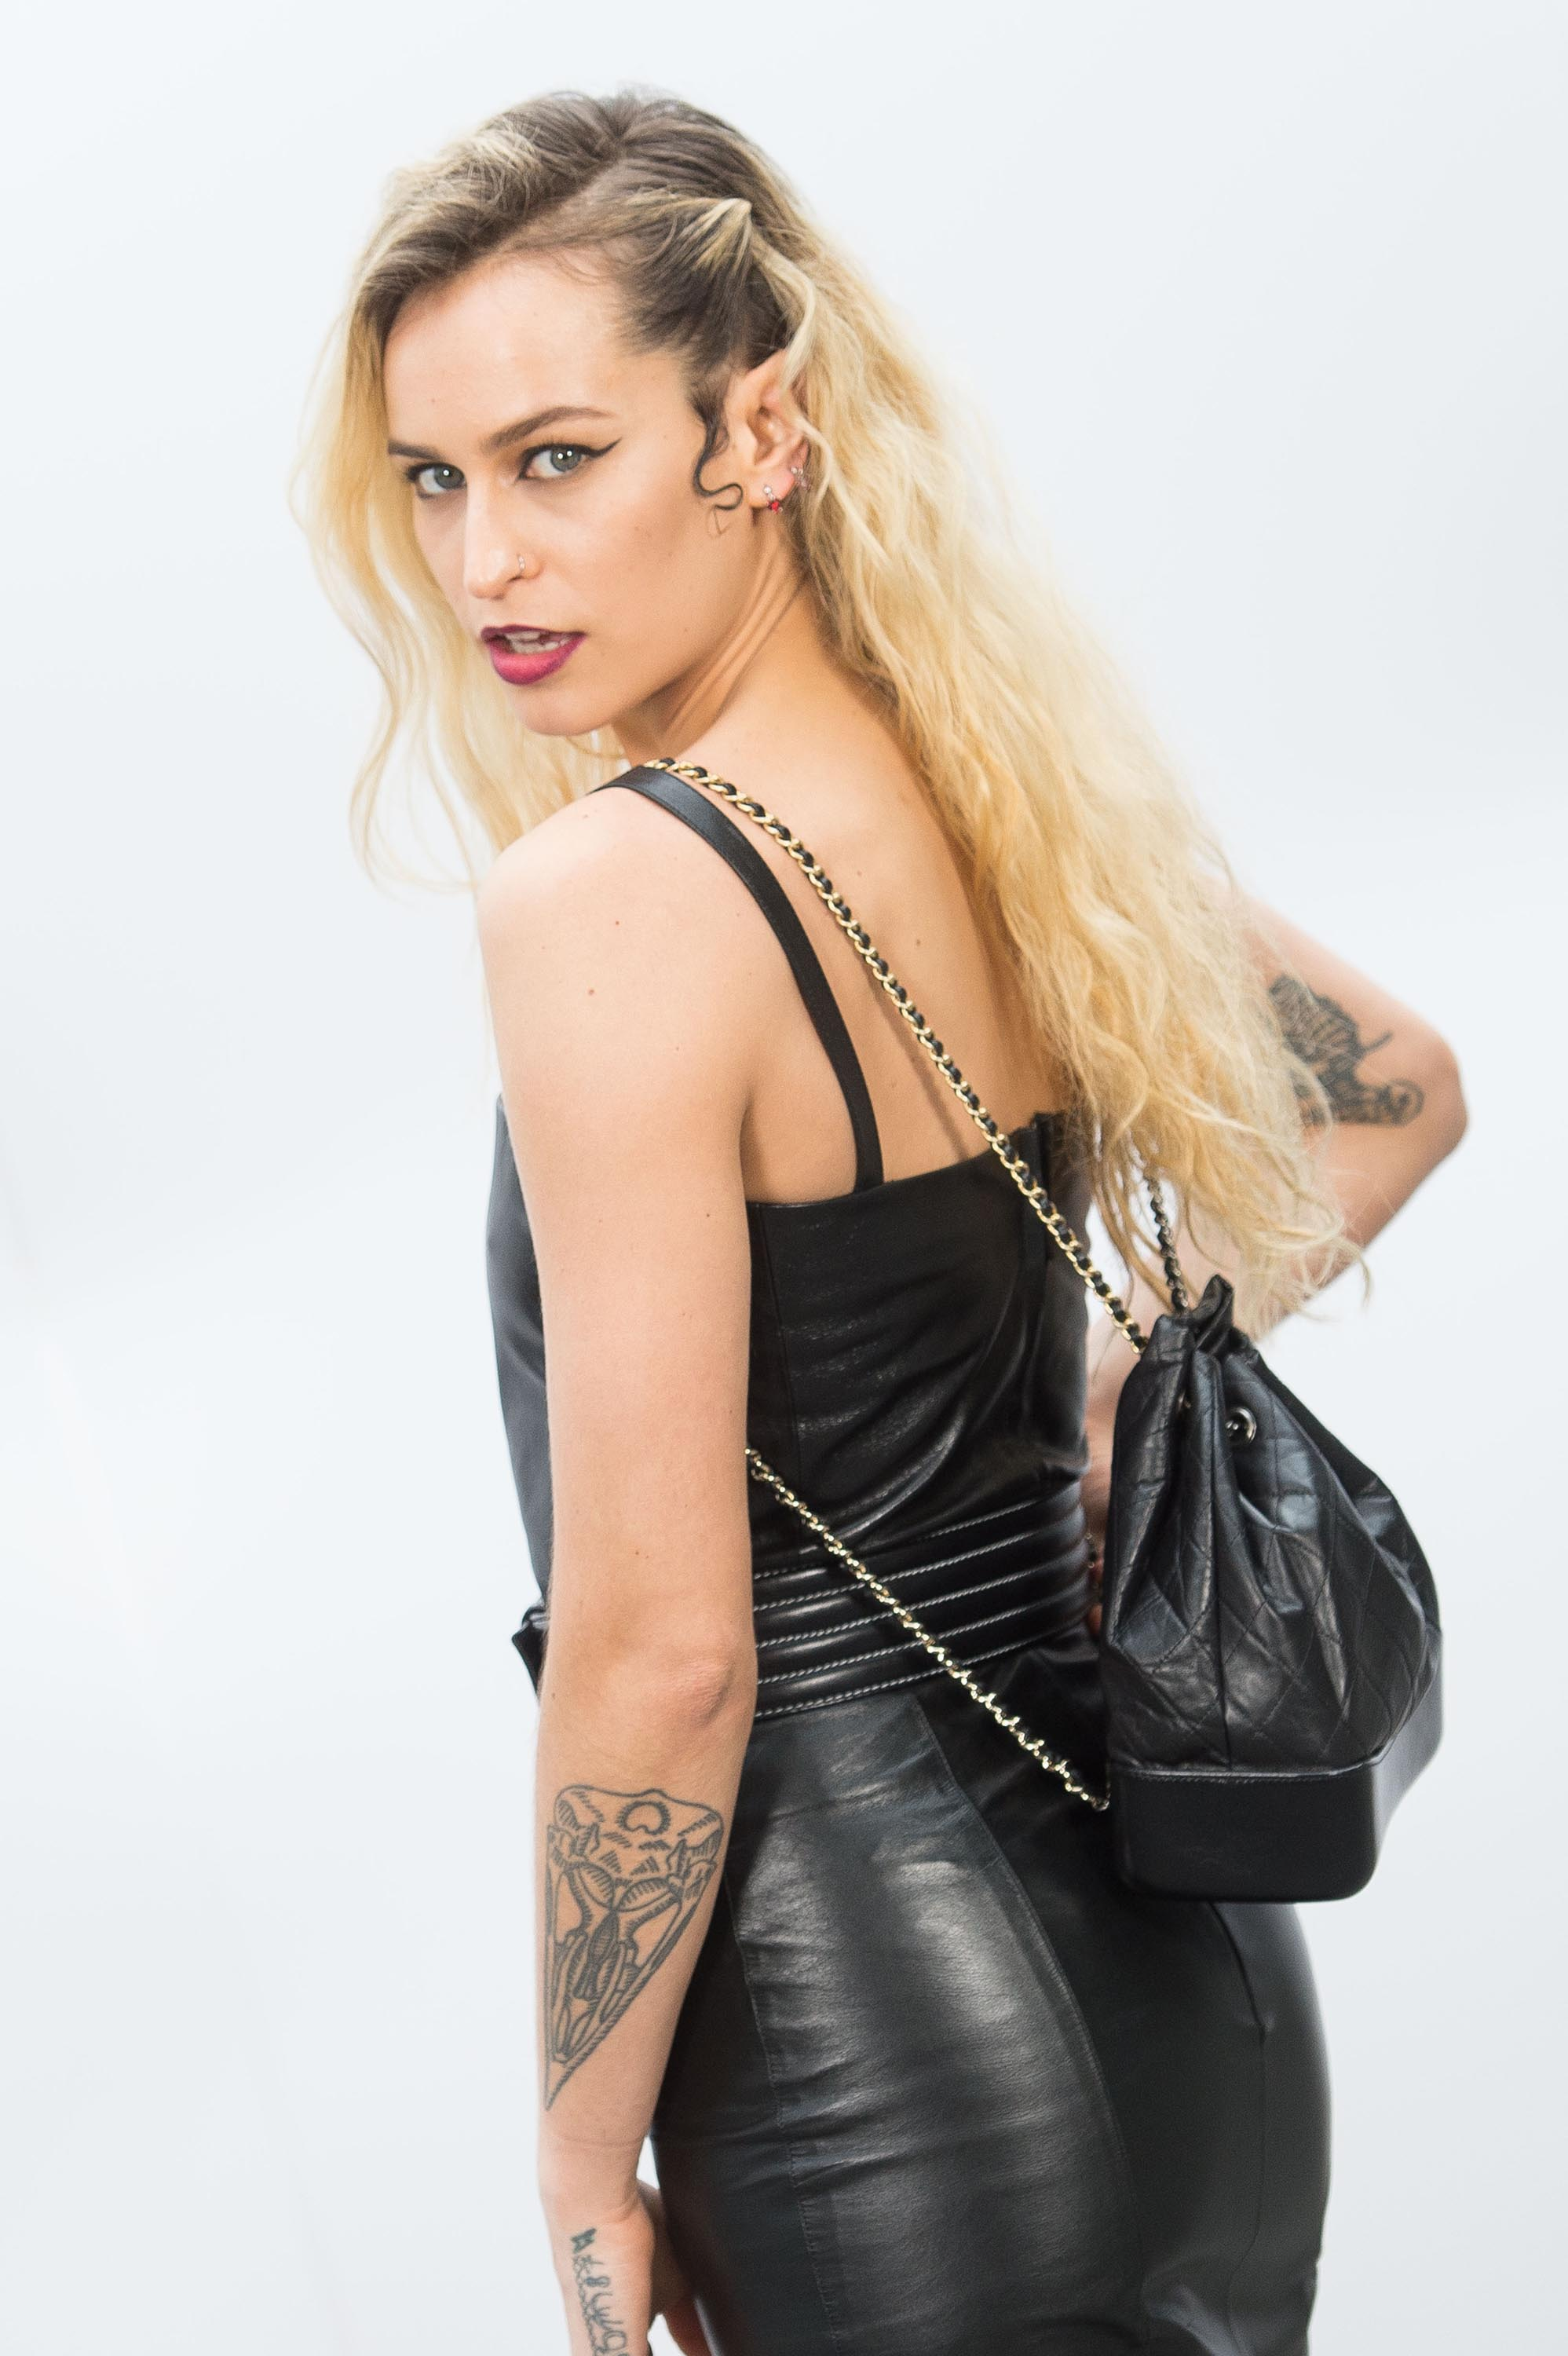 Alice Dellal at Chanel?